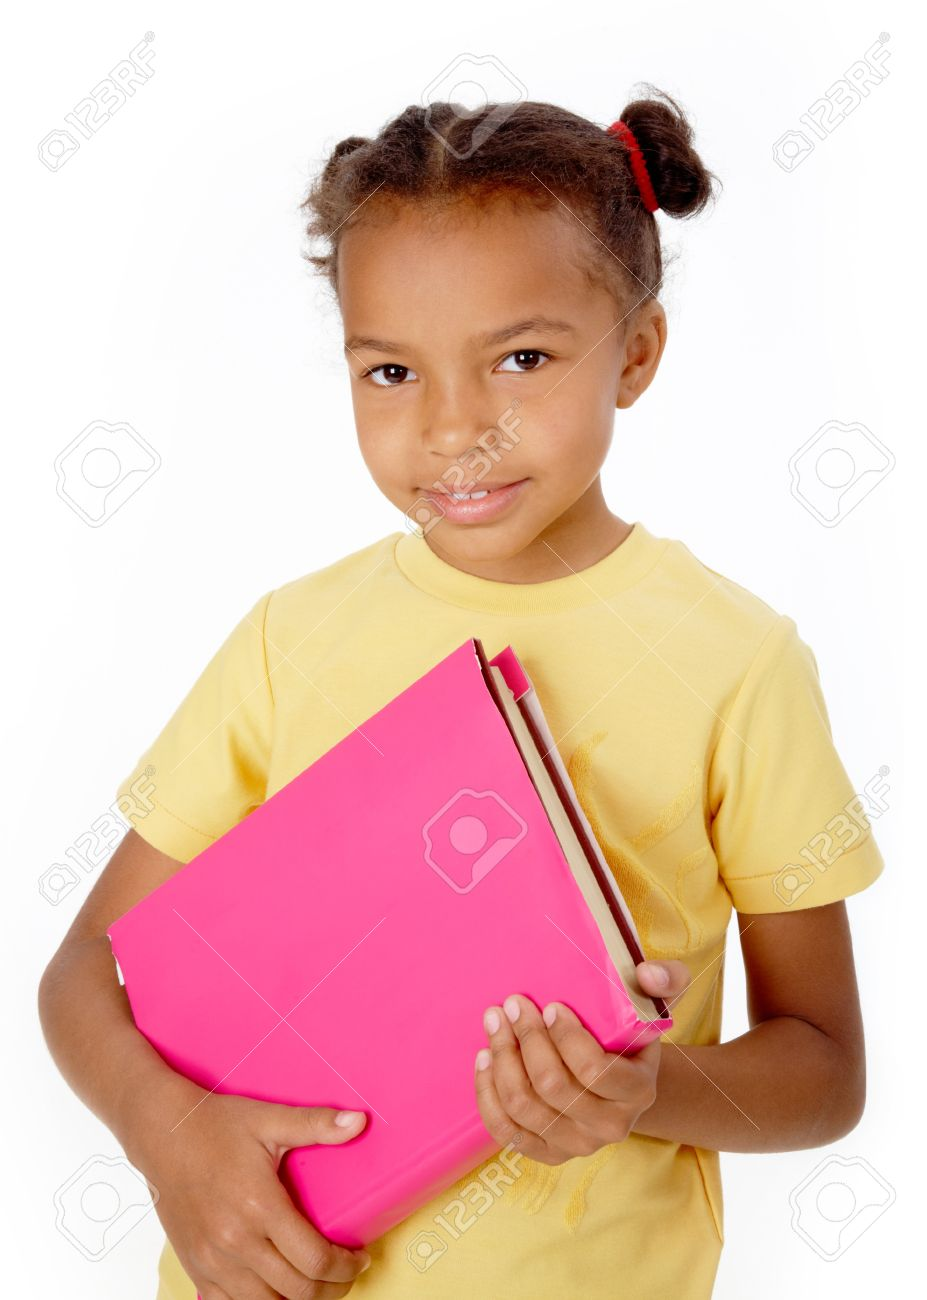 A girl holding a book png royalty free library Image Of Black Girl Holding Book And Looking At Camera Stock Photo ... png royalty free library